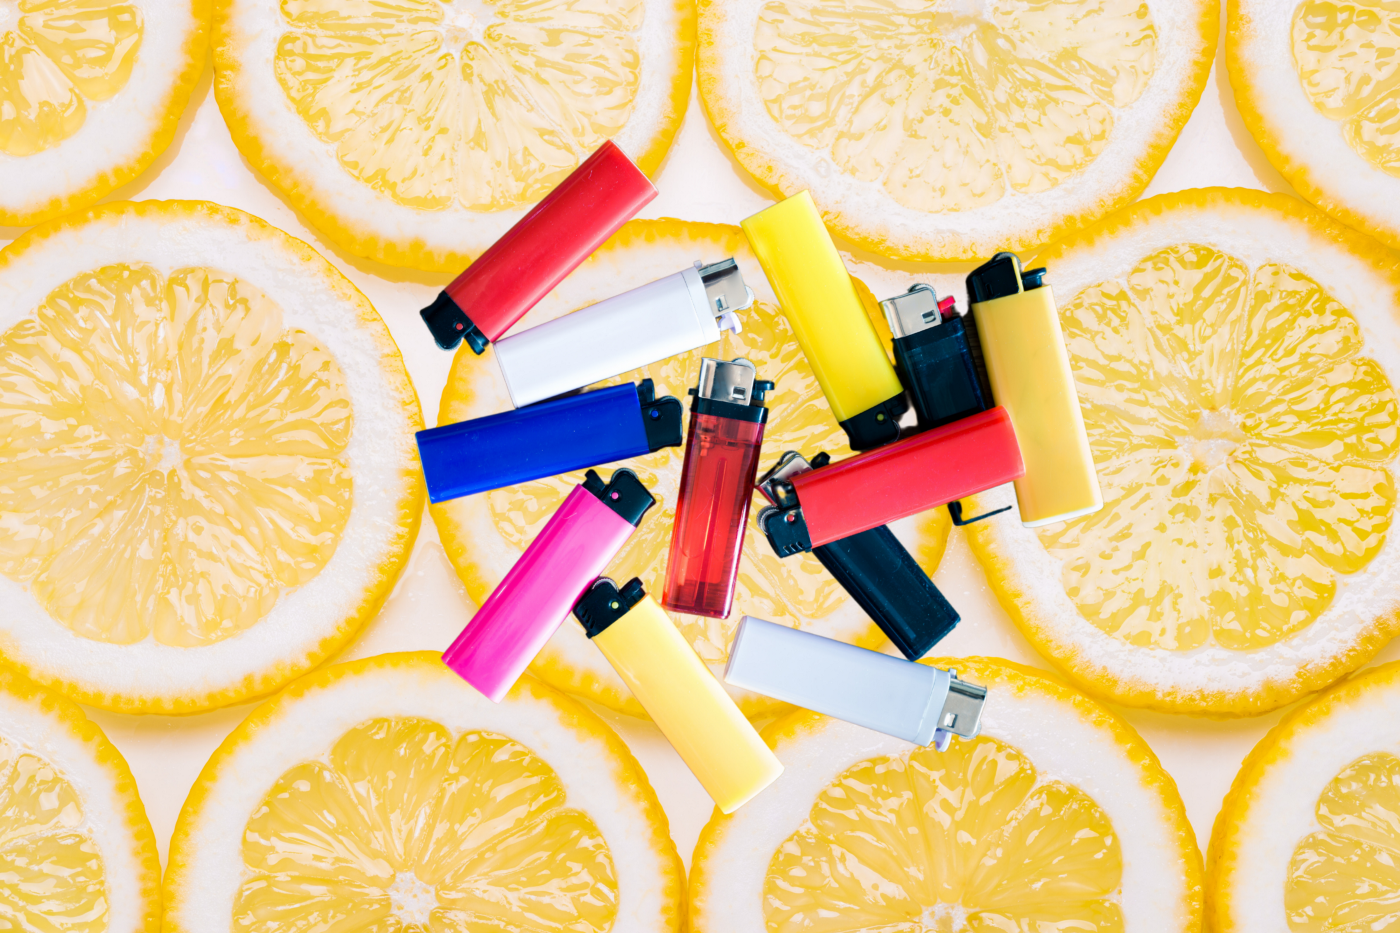 Several lighters against a background of sliced oranges.